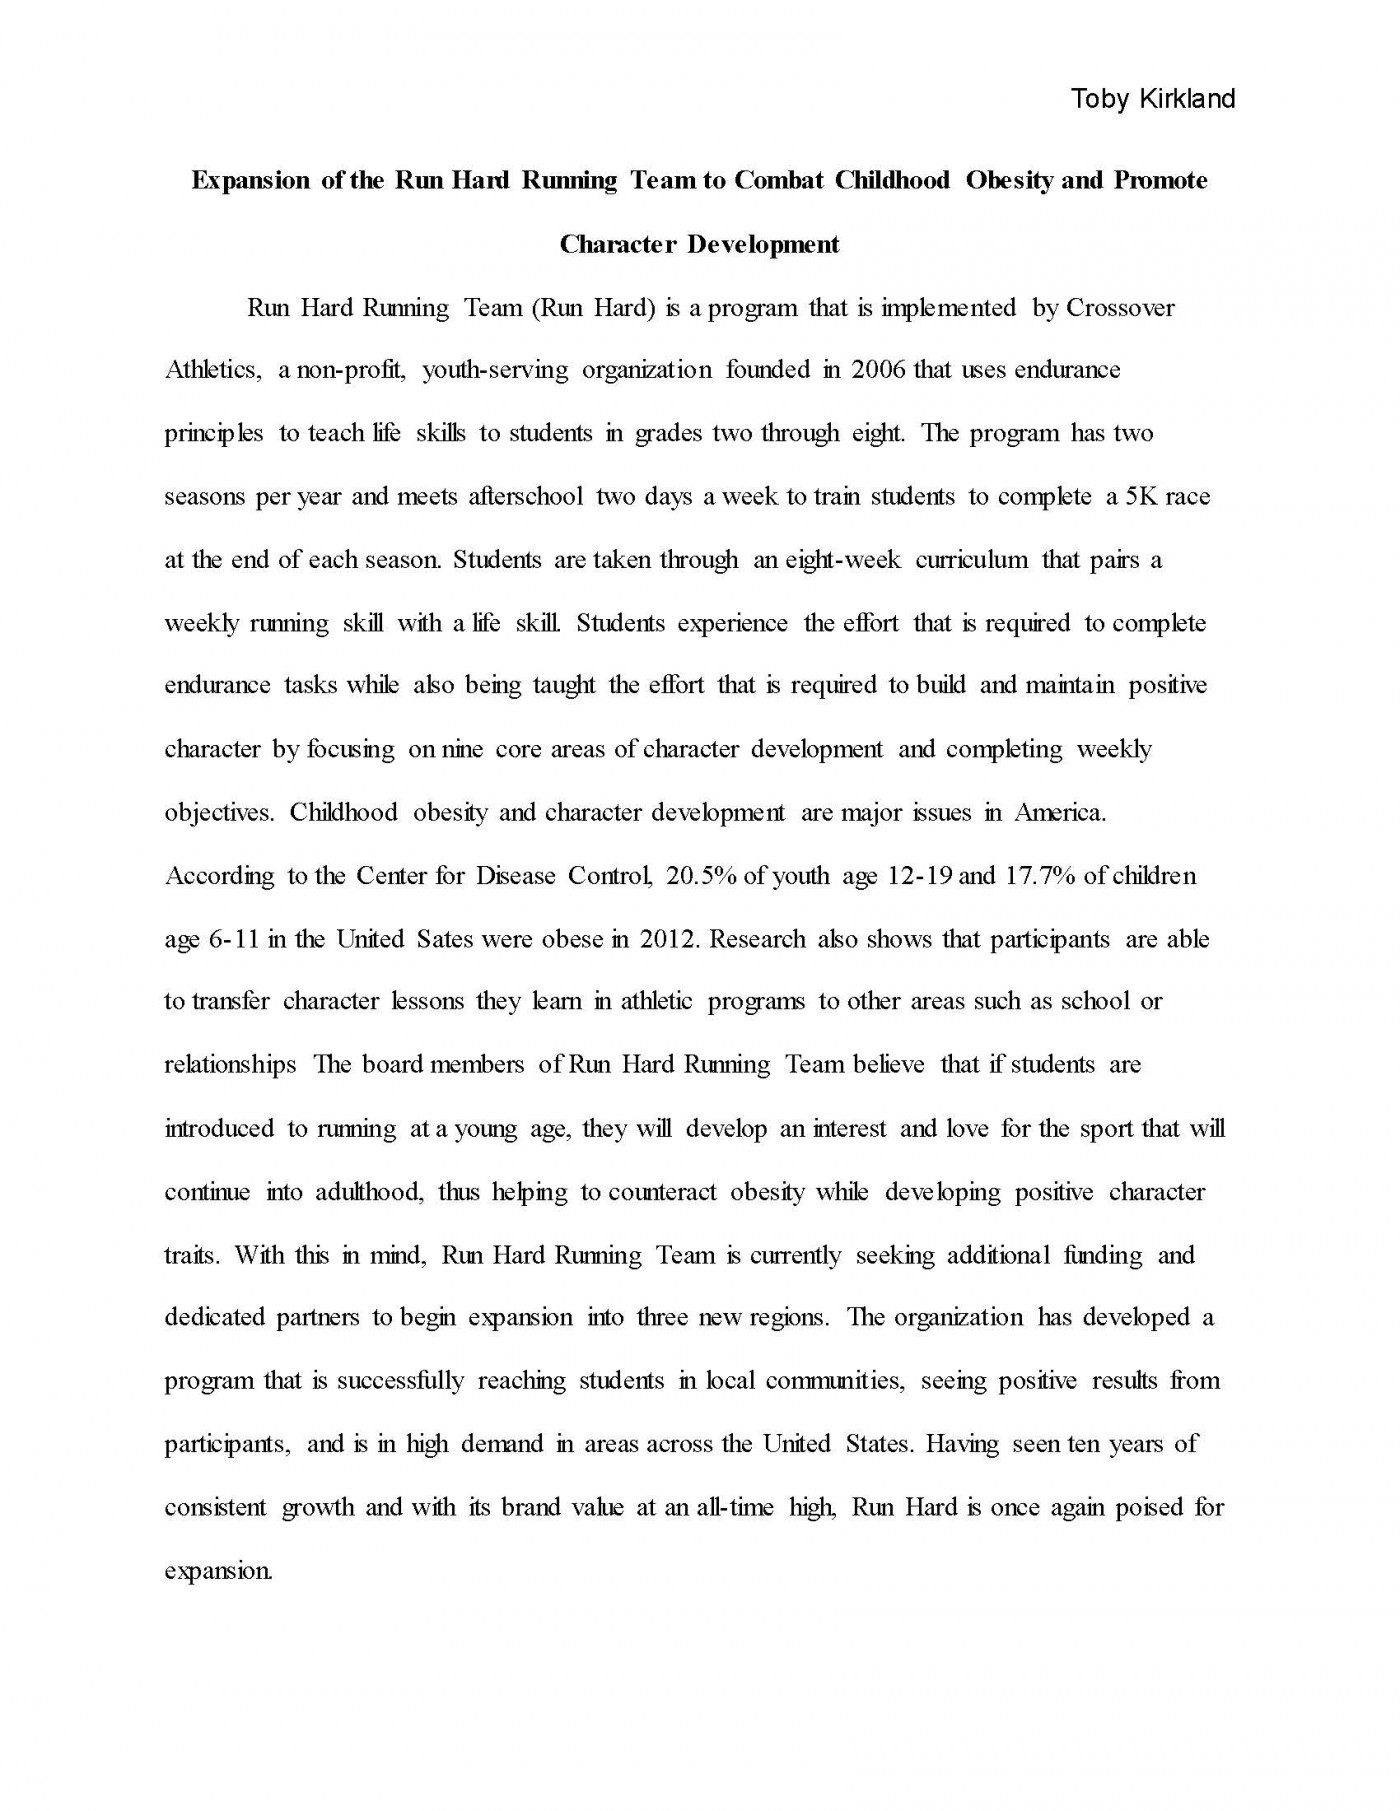 003 Childhood Obesity Research Paper Introduction Toby Kirkland Final Grant Proposal Page 01 Frightening 1400